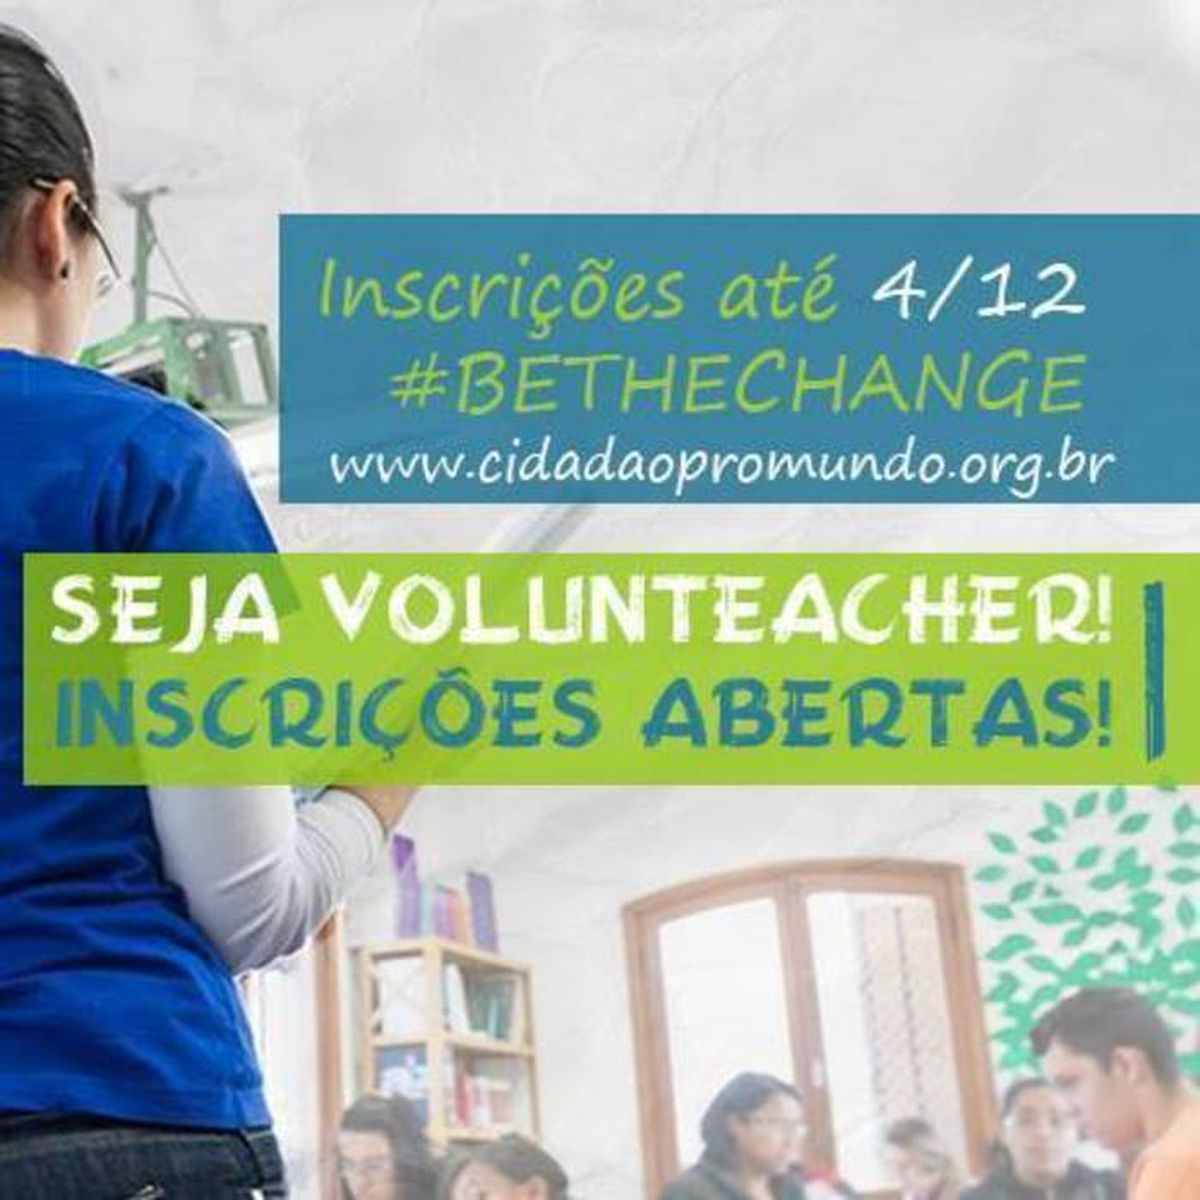 Be a Volunteacher!